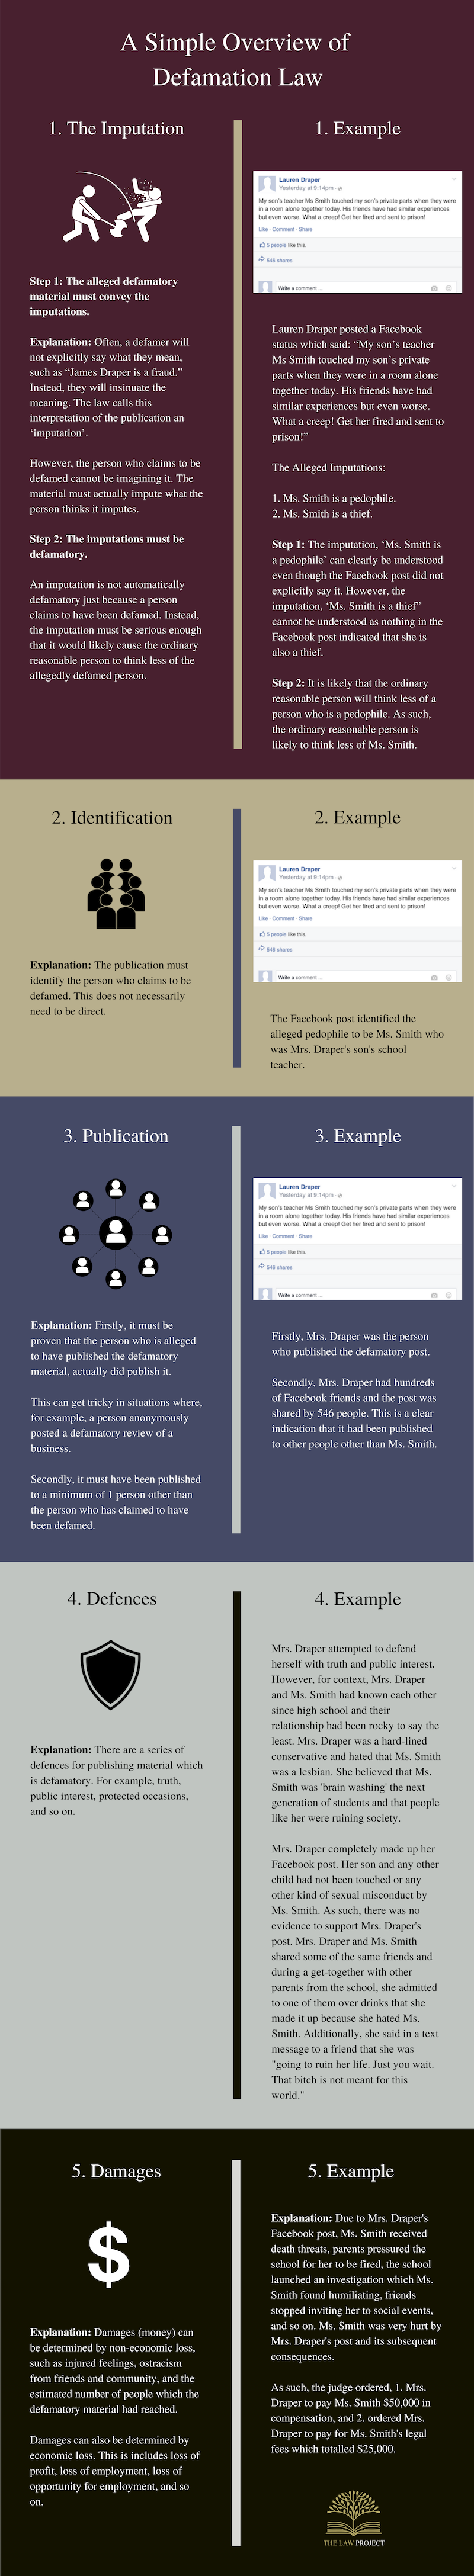 Defamation Overview Infographic v7.png